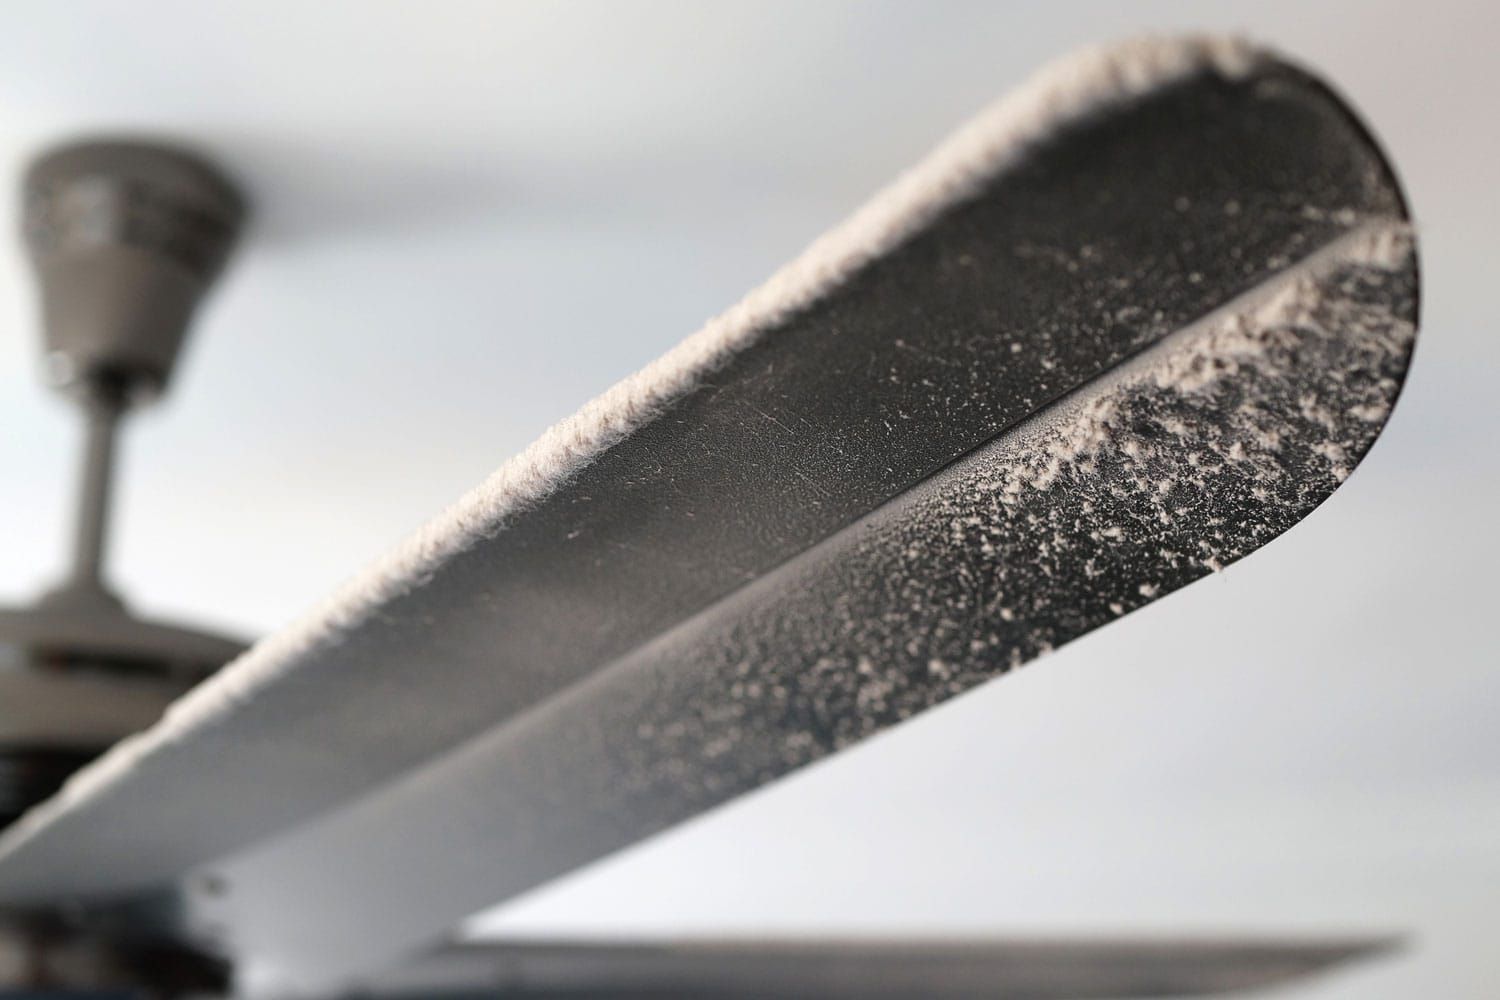 Close Up Dusty Ceiling Fan With Thick Dust Blocking The Air Flow